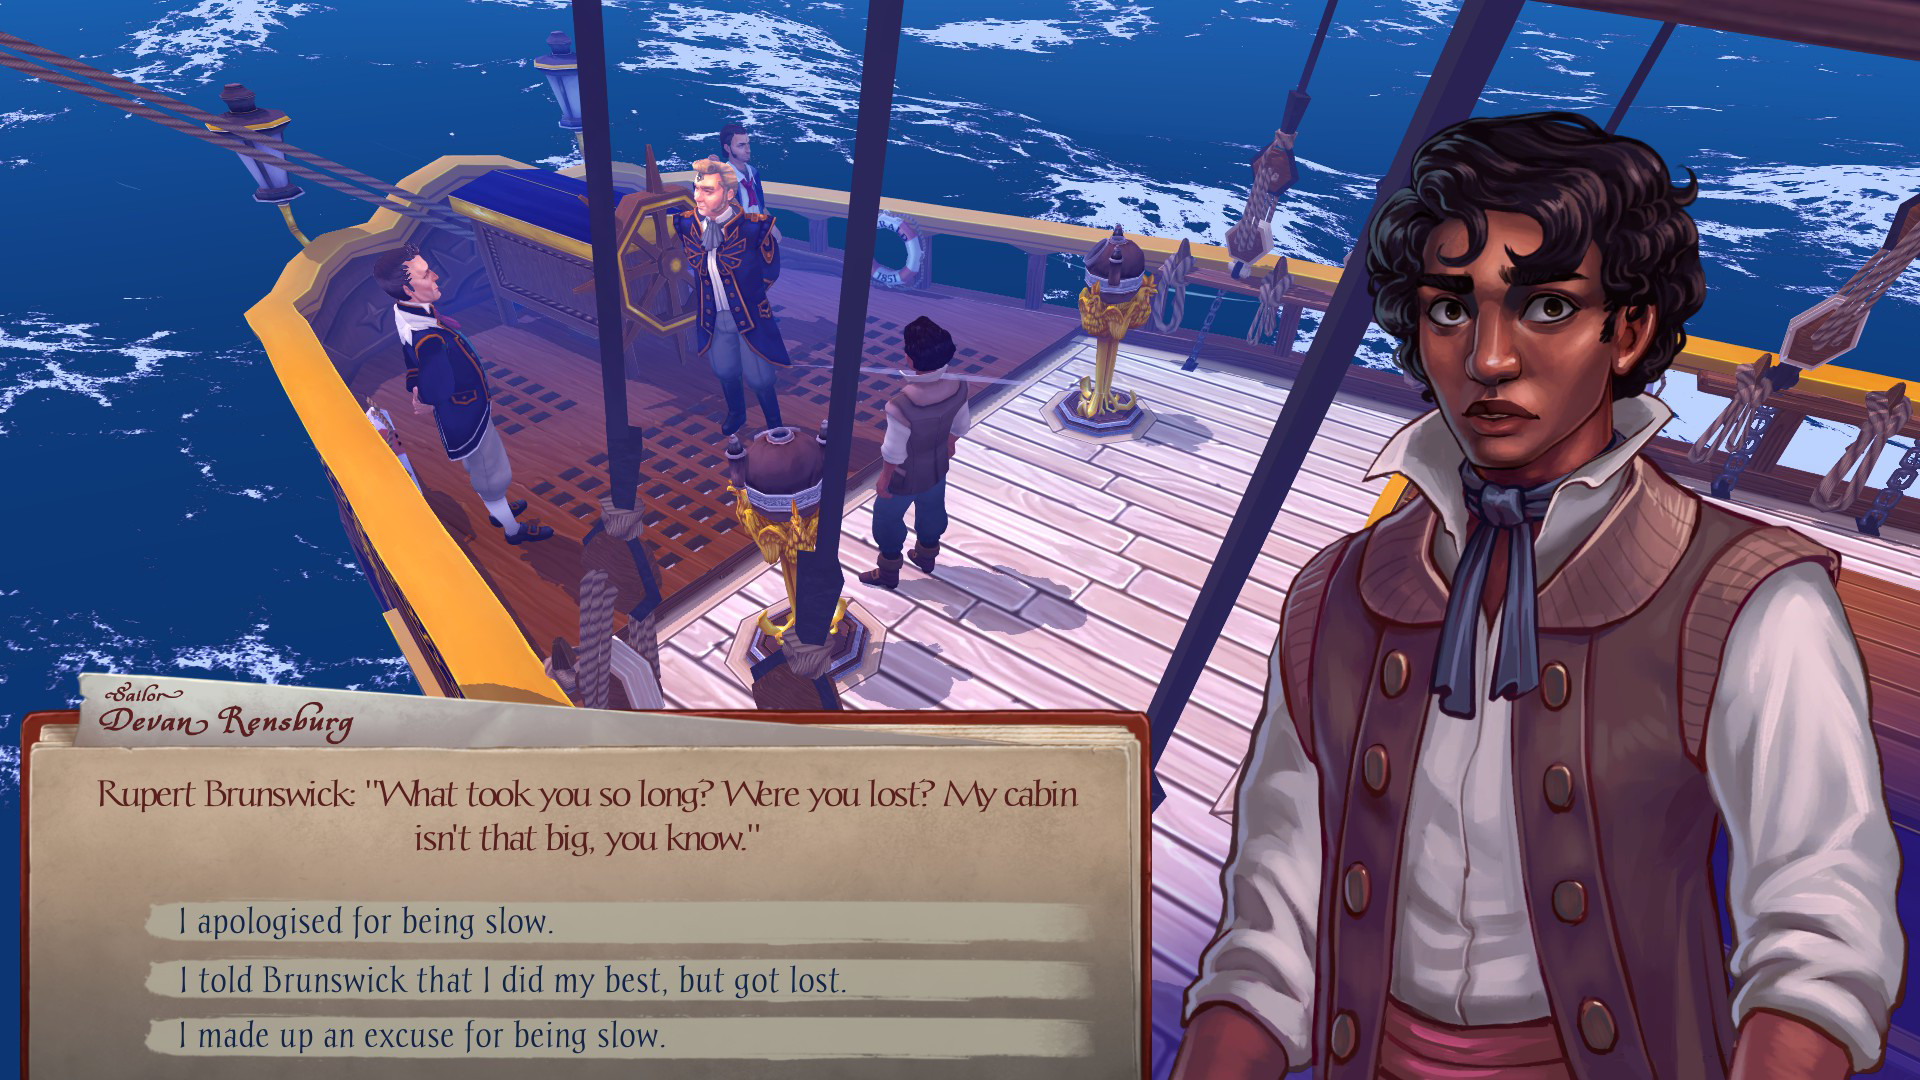 Several masc looking people standing on a sailing ship. Dialogue reads 'Rupert Brunswick. What took you so long? Were you lost? My cabin isn't that big, you know.' and 'I apologise for being slow. I told Brunswick I did my best, but got lost. I made up an excuse for being slow.'.